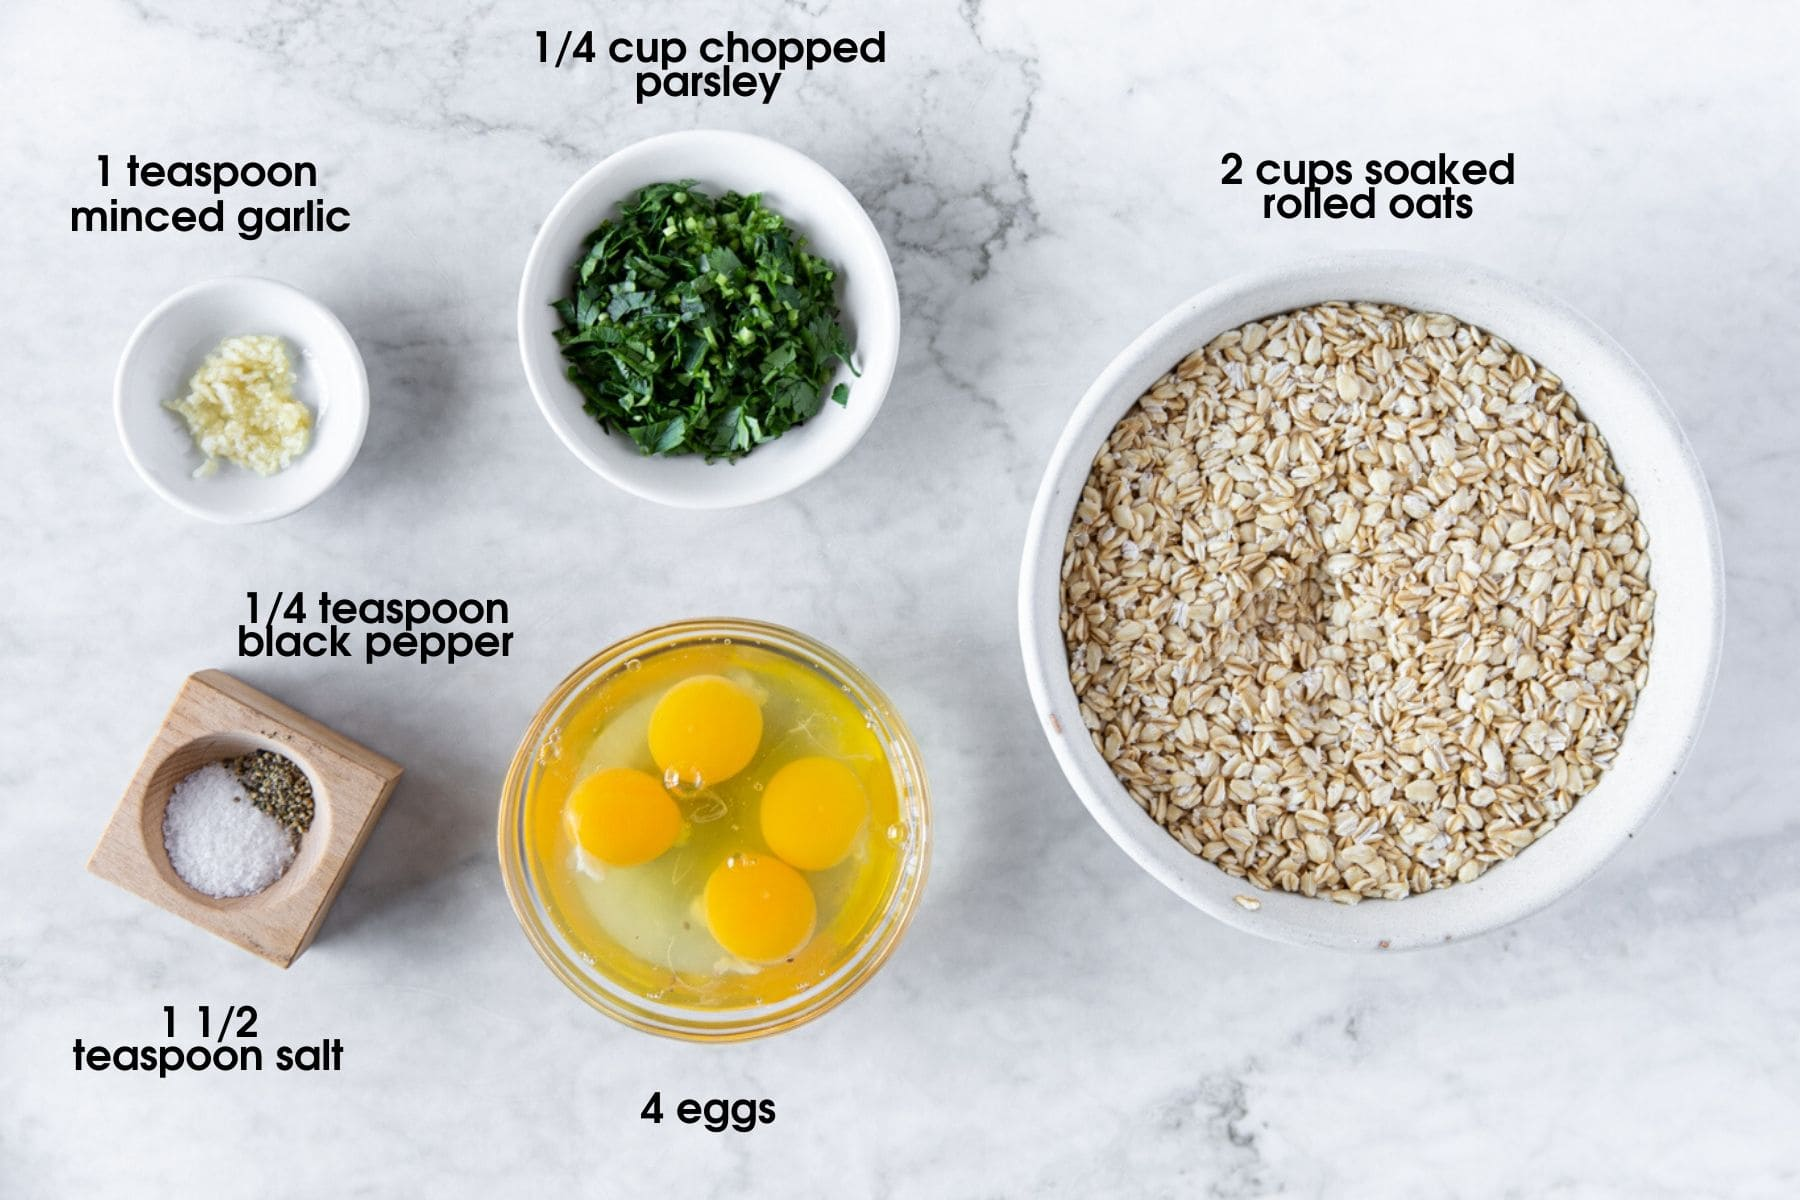 ingredients to make easy savory oatmeal bars using eggs, parsley, garlic, salt, black pepper and soaked oats.